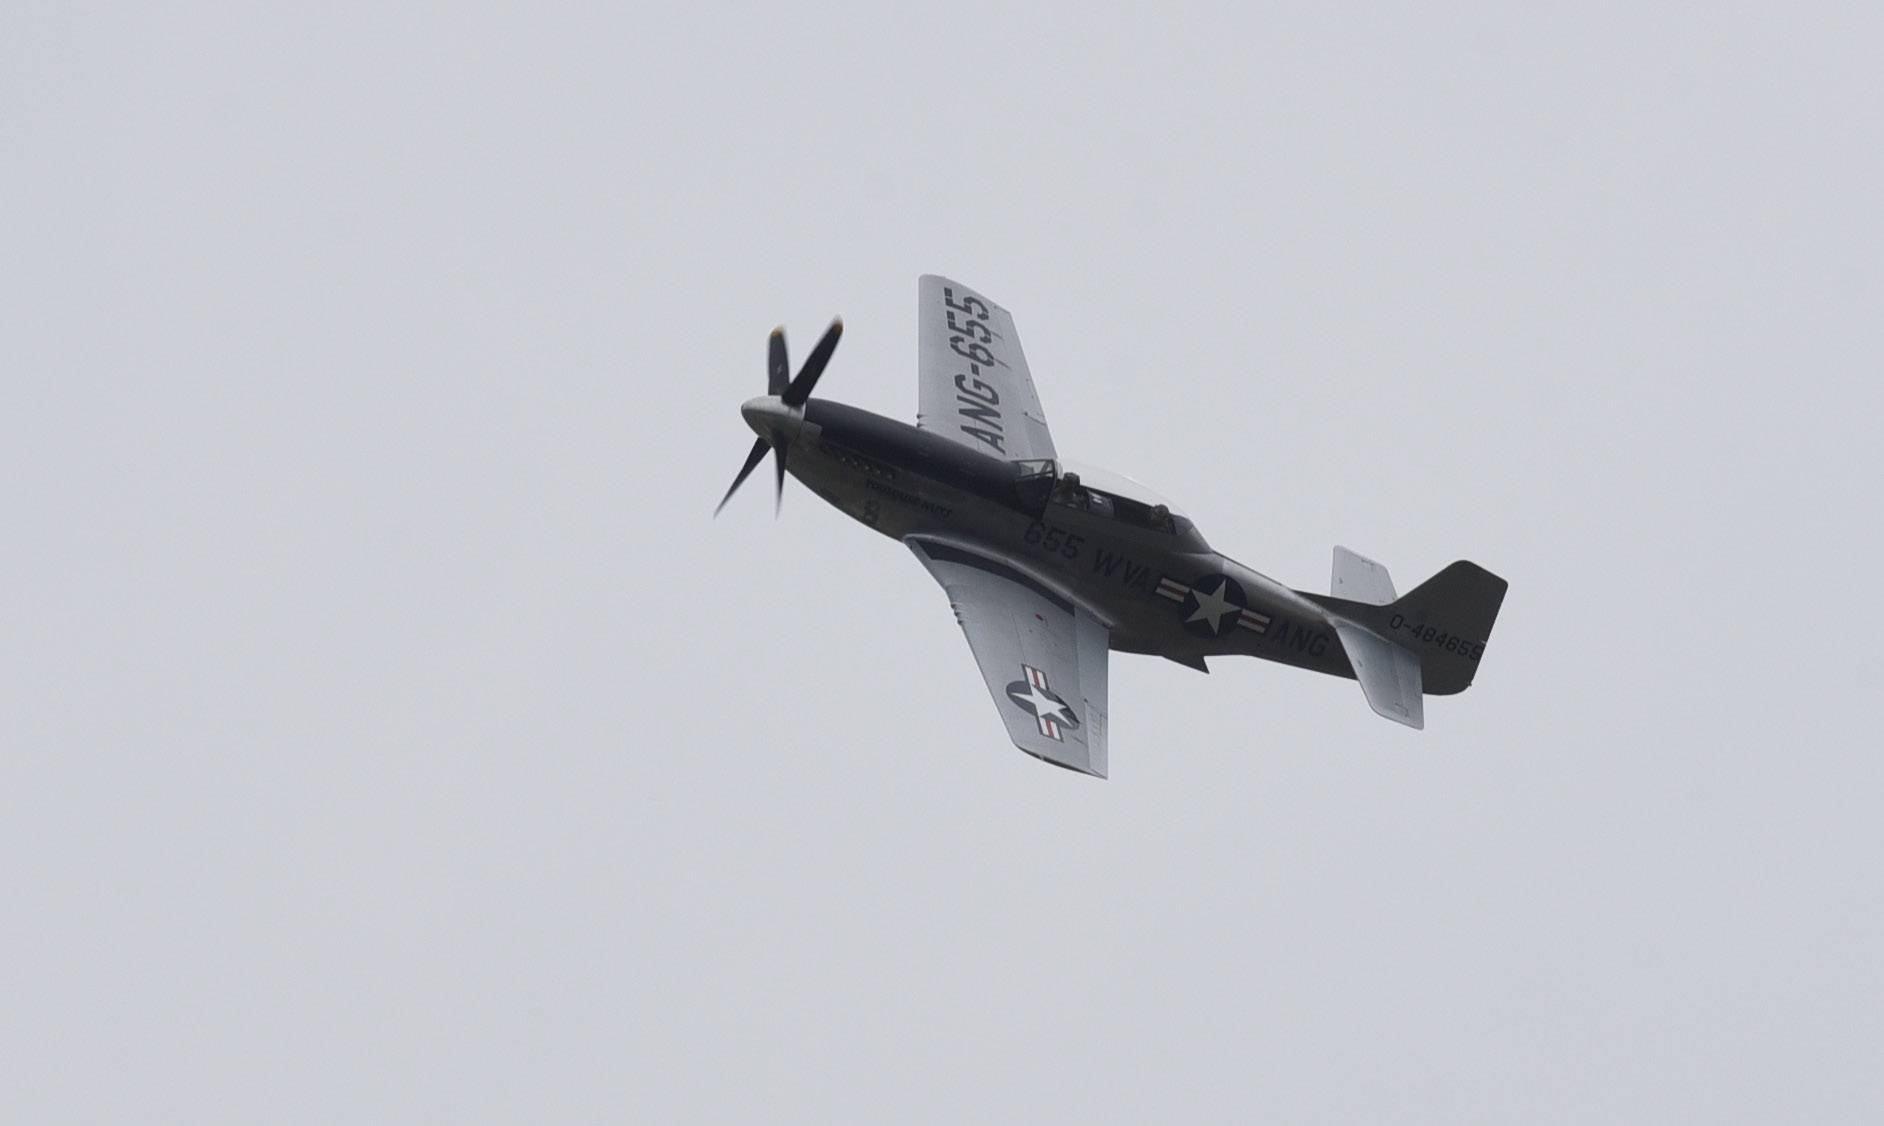 This P-51 Mustang fighter plane, part of the Wings of Freedom tour, arrives at Chicago Executive Airport in Wheeling Wednesday. Training flights on the plane are available.